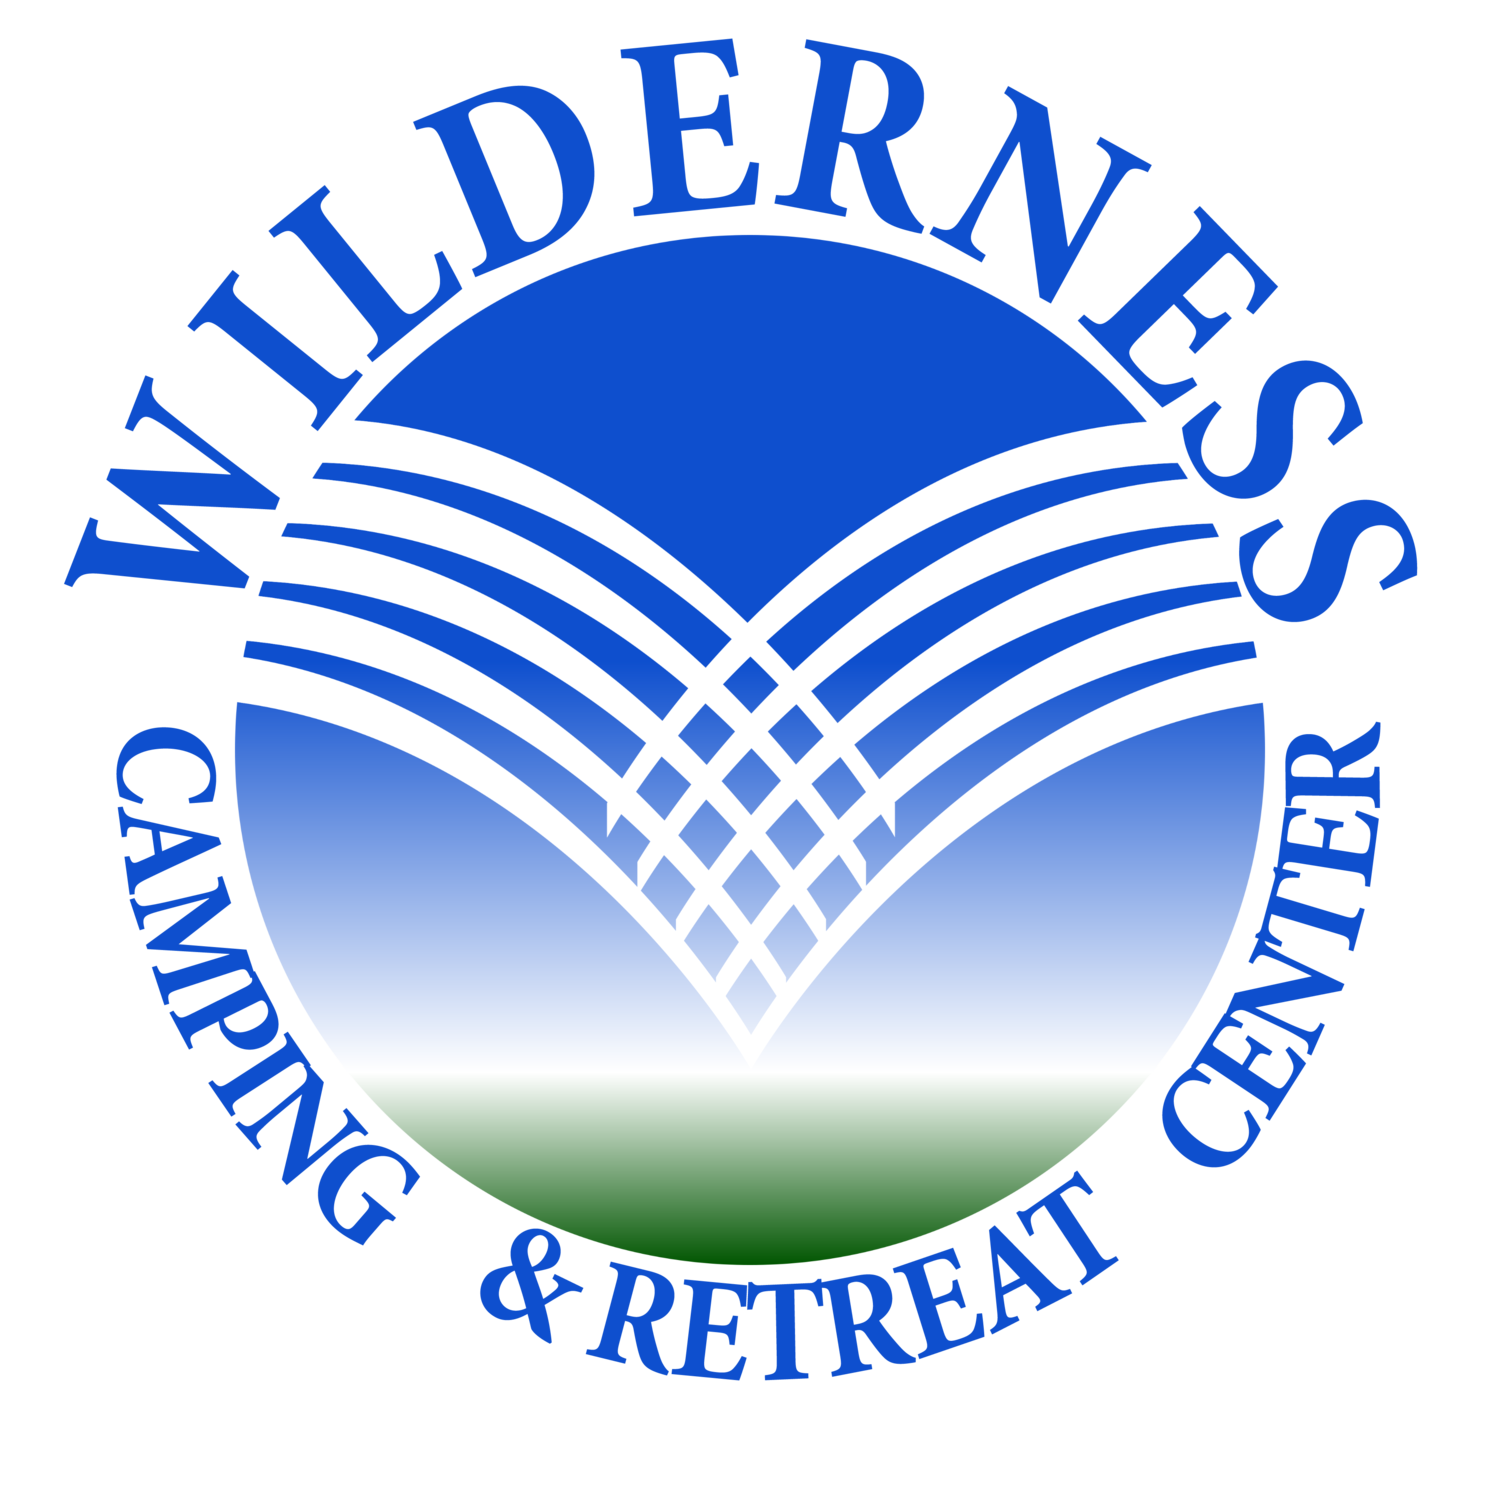 Wilderness Camping & Retreat Center